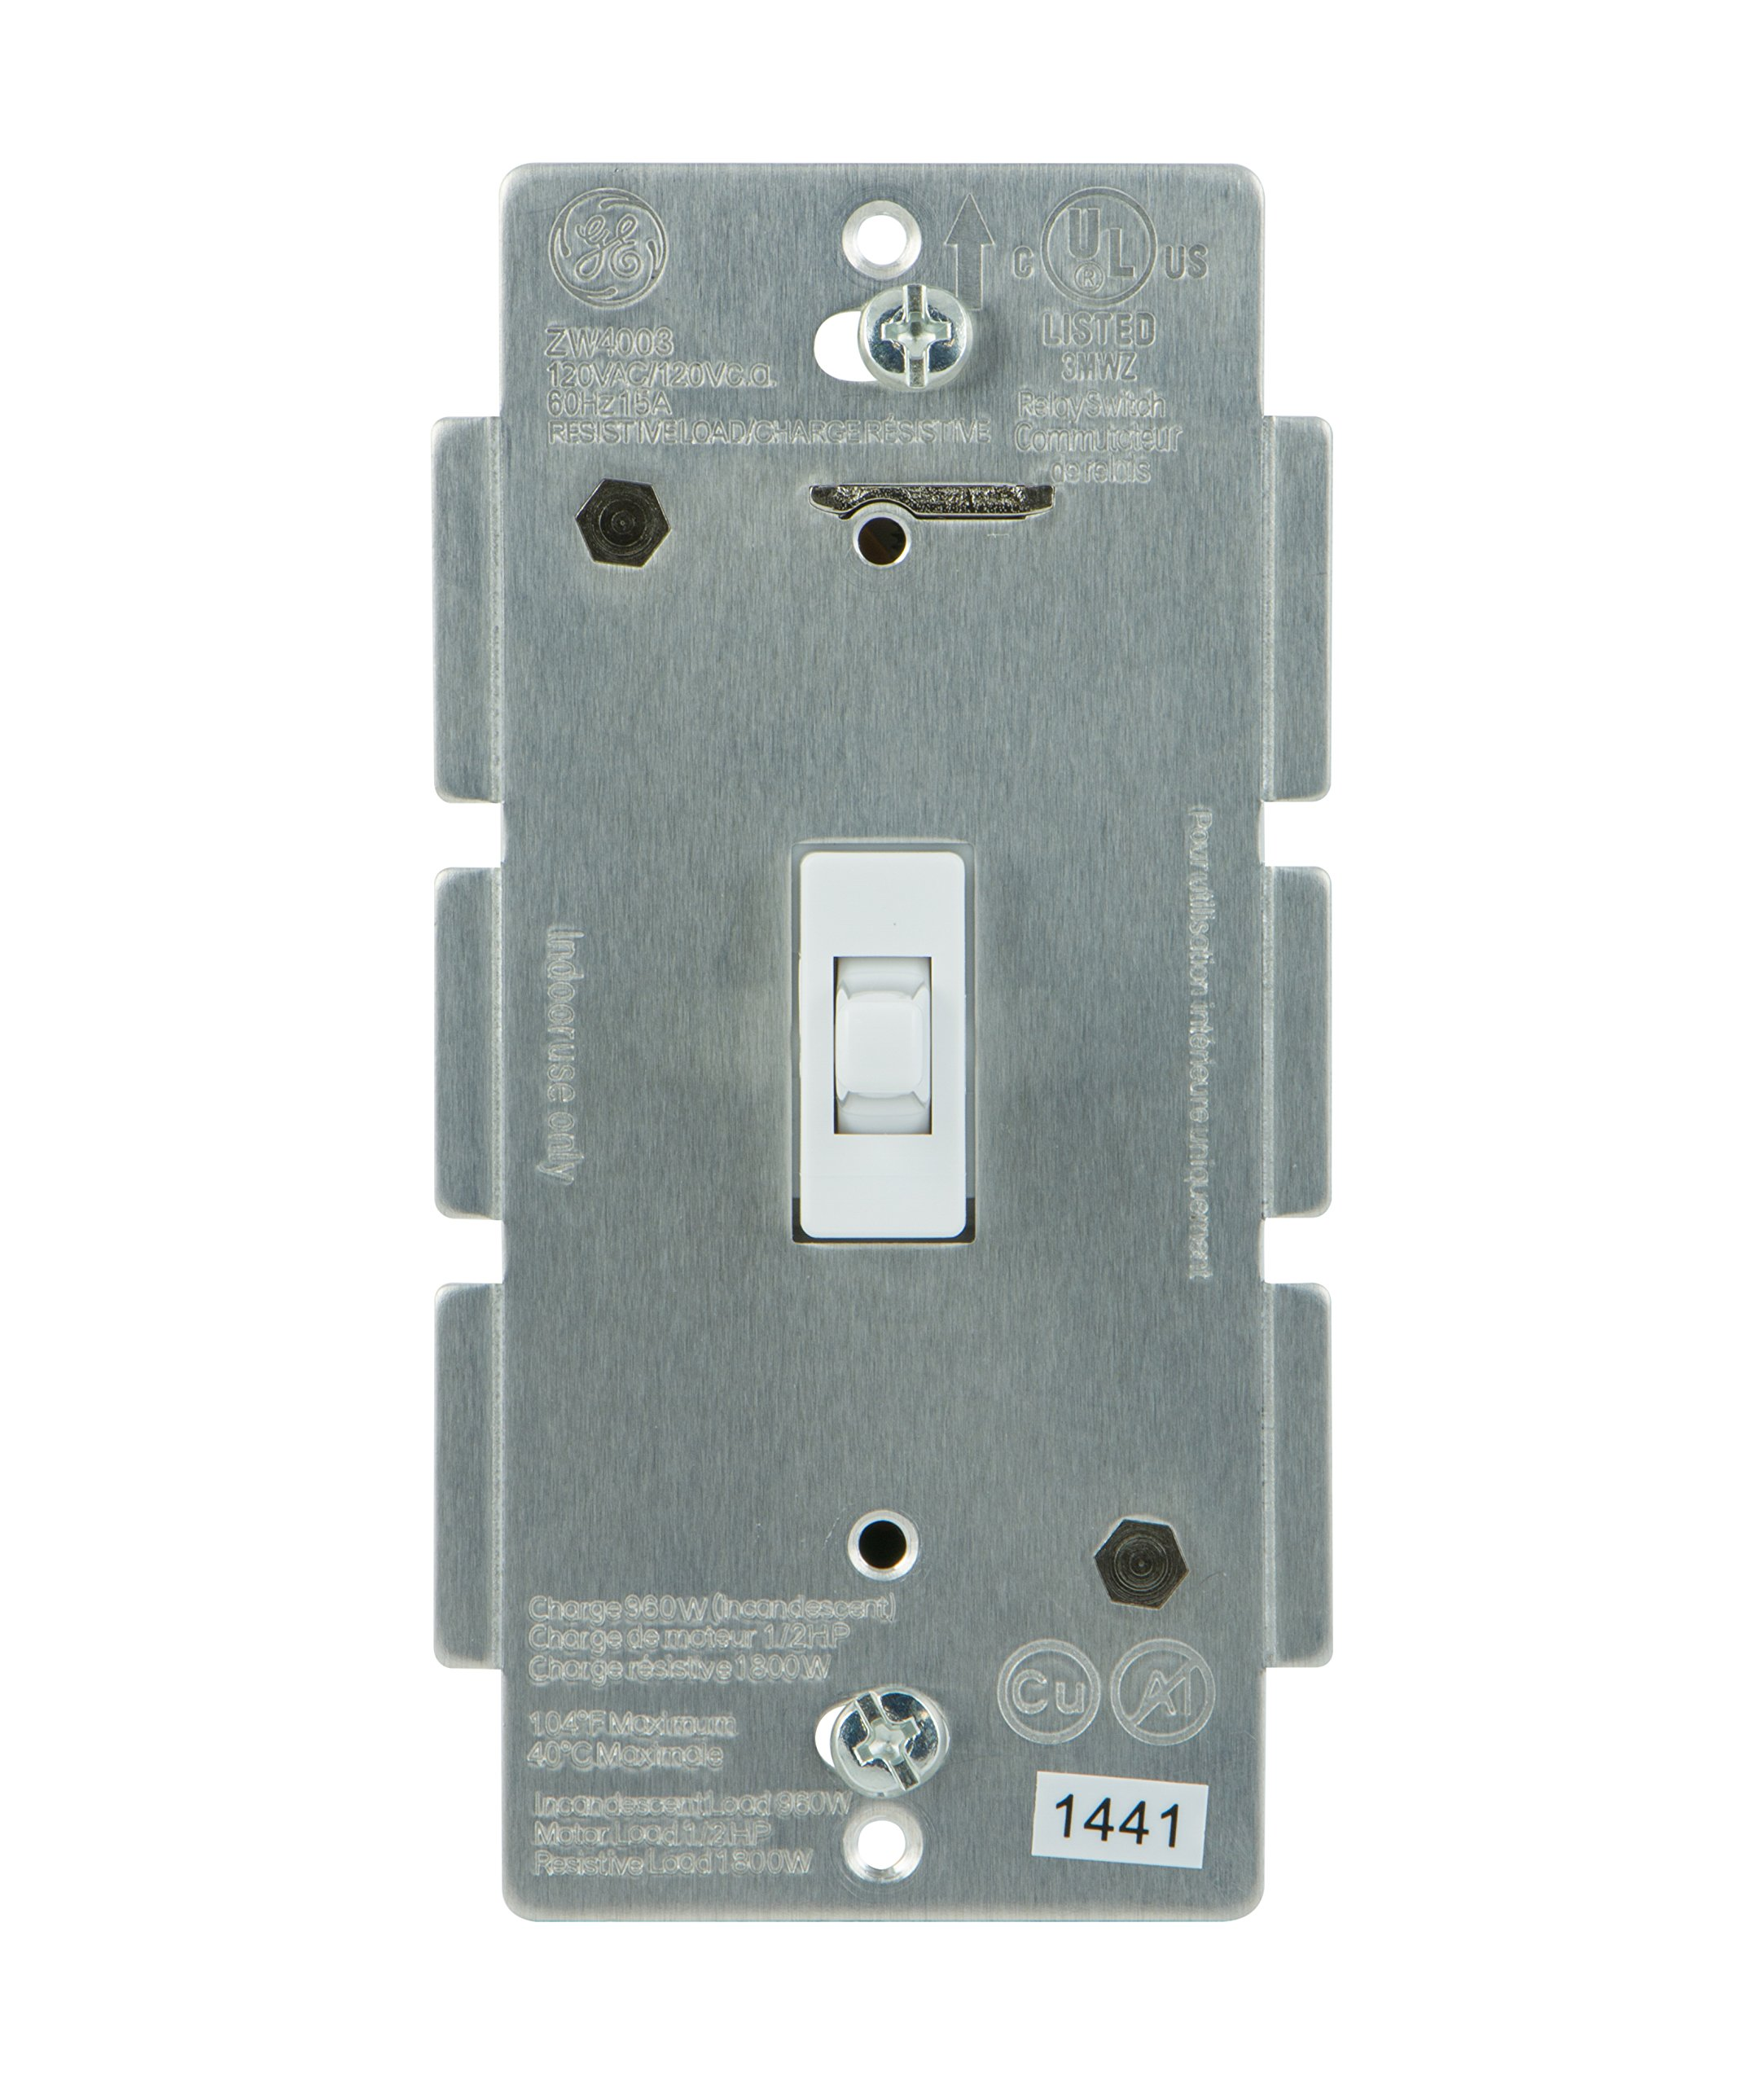 GE Z-Wave Wireless Lighting Control Smart Toggle Switch In-Wall White 12727 eBay